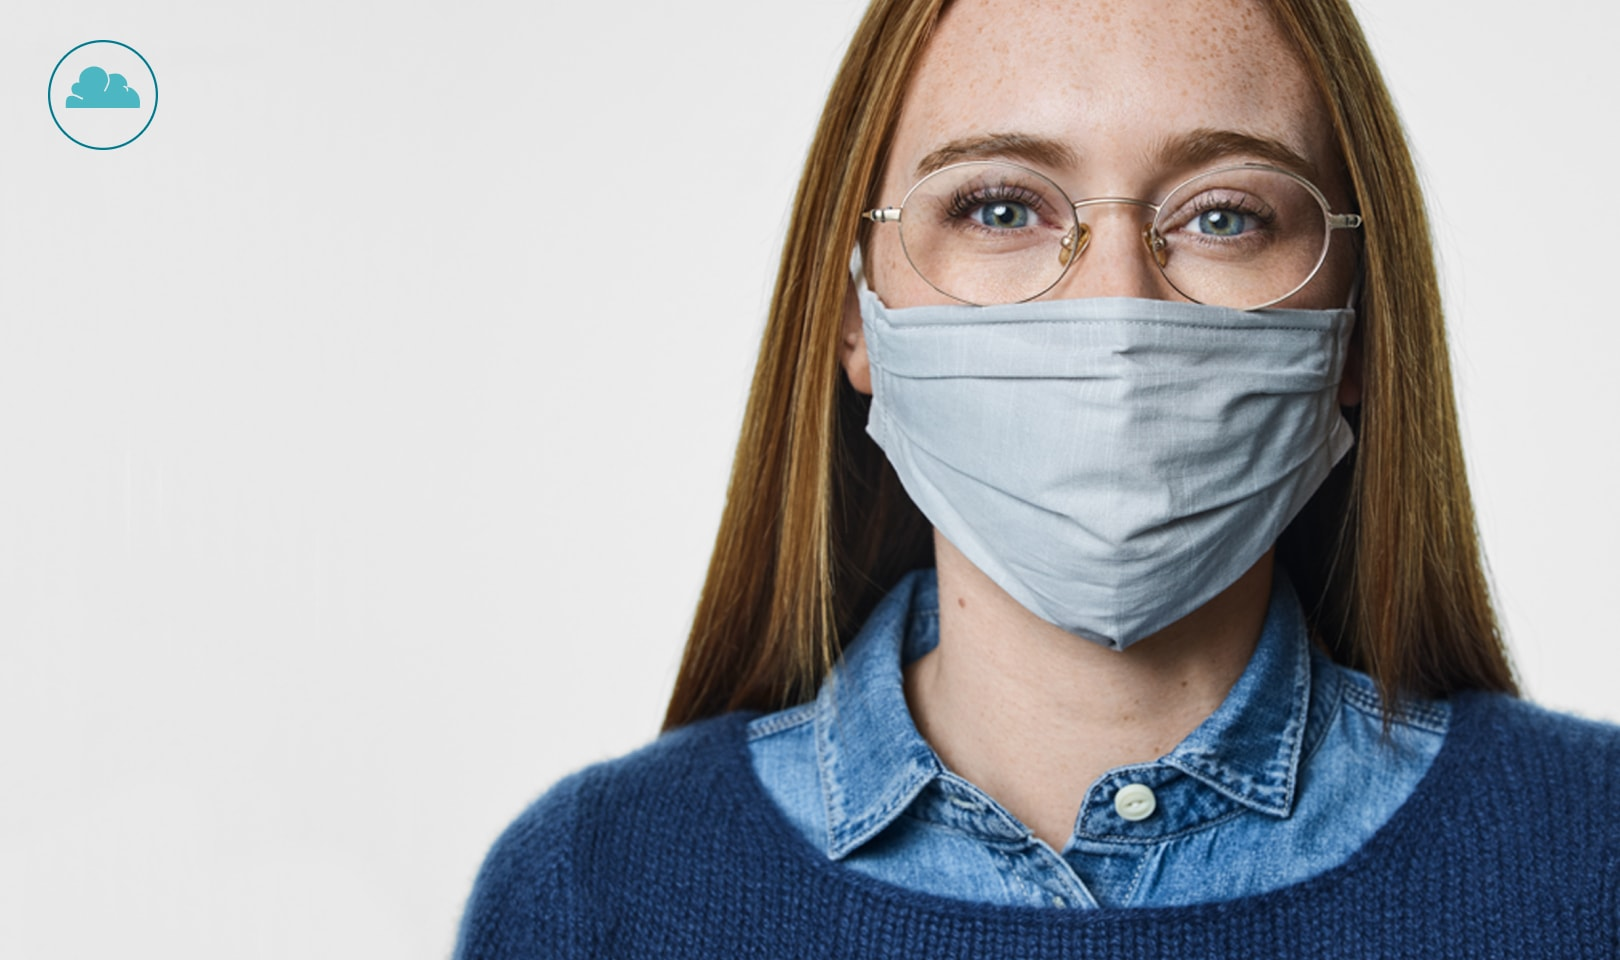 Image of an icon for a fog cloud. Image of a woman wearing face mask wearing round glasses.